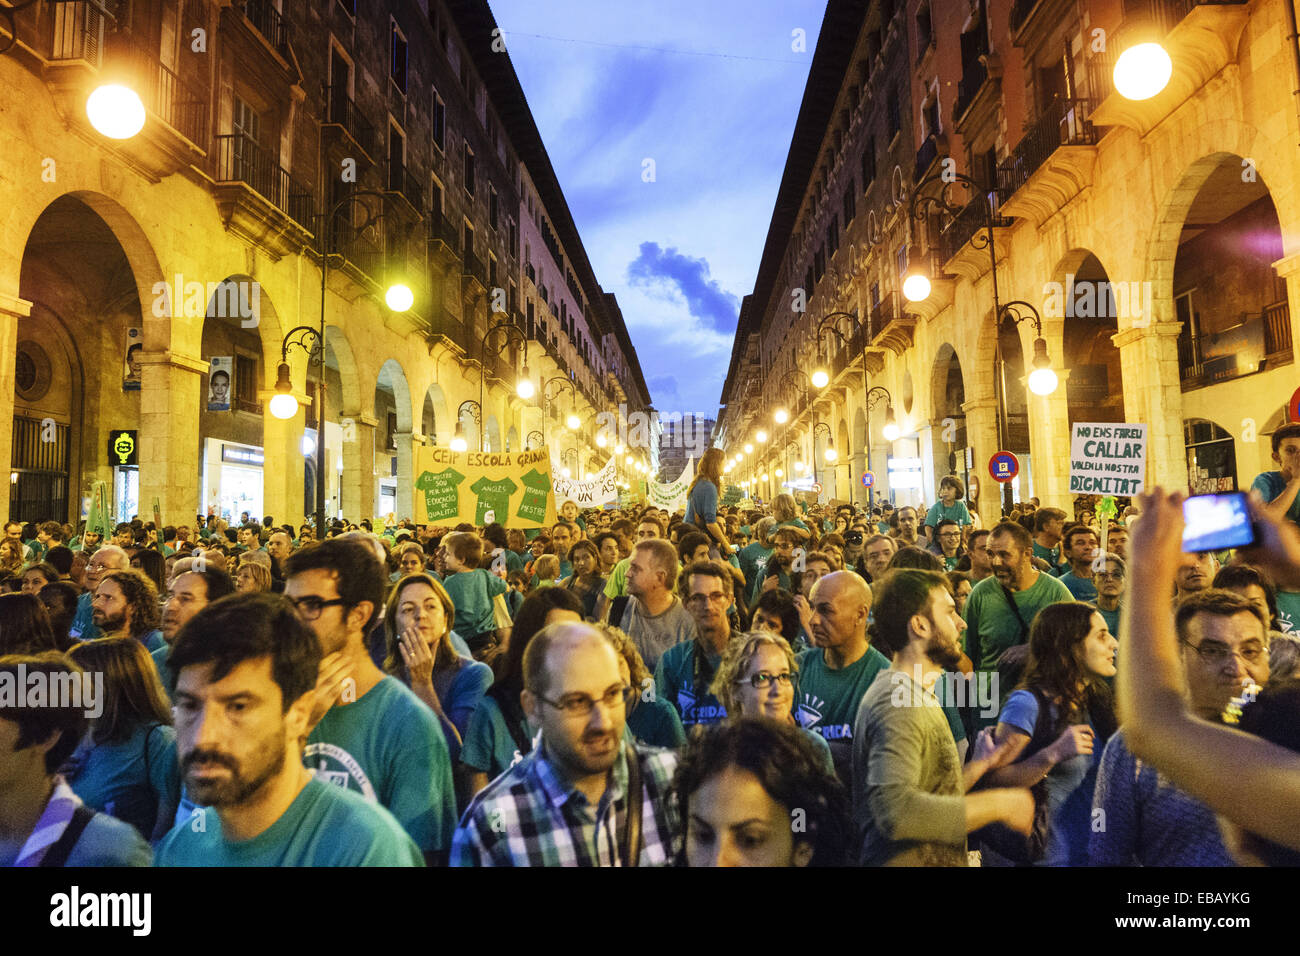 demonstration against government policy educational, street Jaime III, Palma.Mallorca.Islas Baleares. Spain. - Stock Image